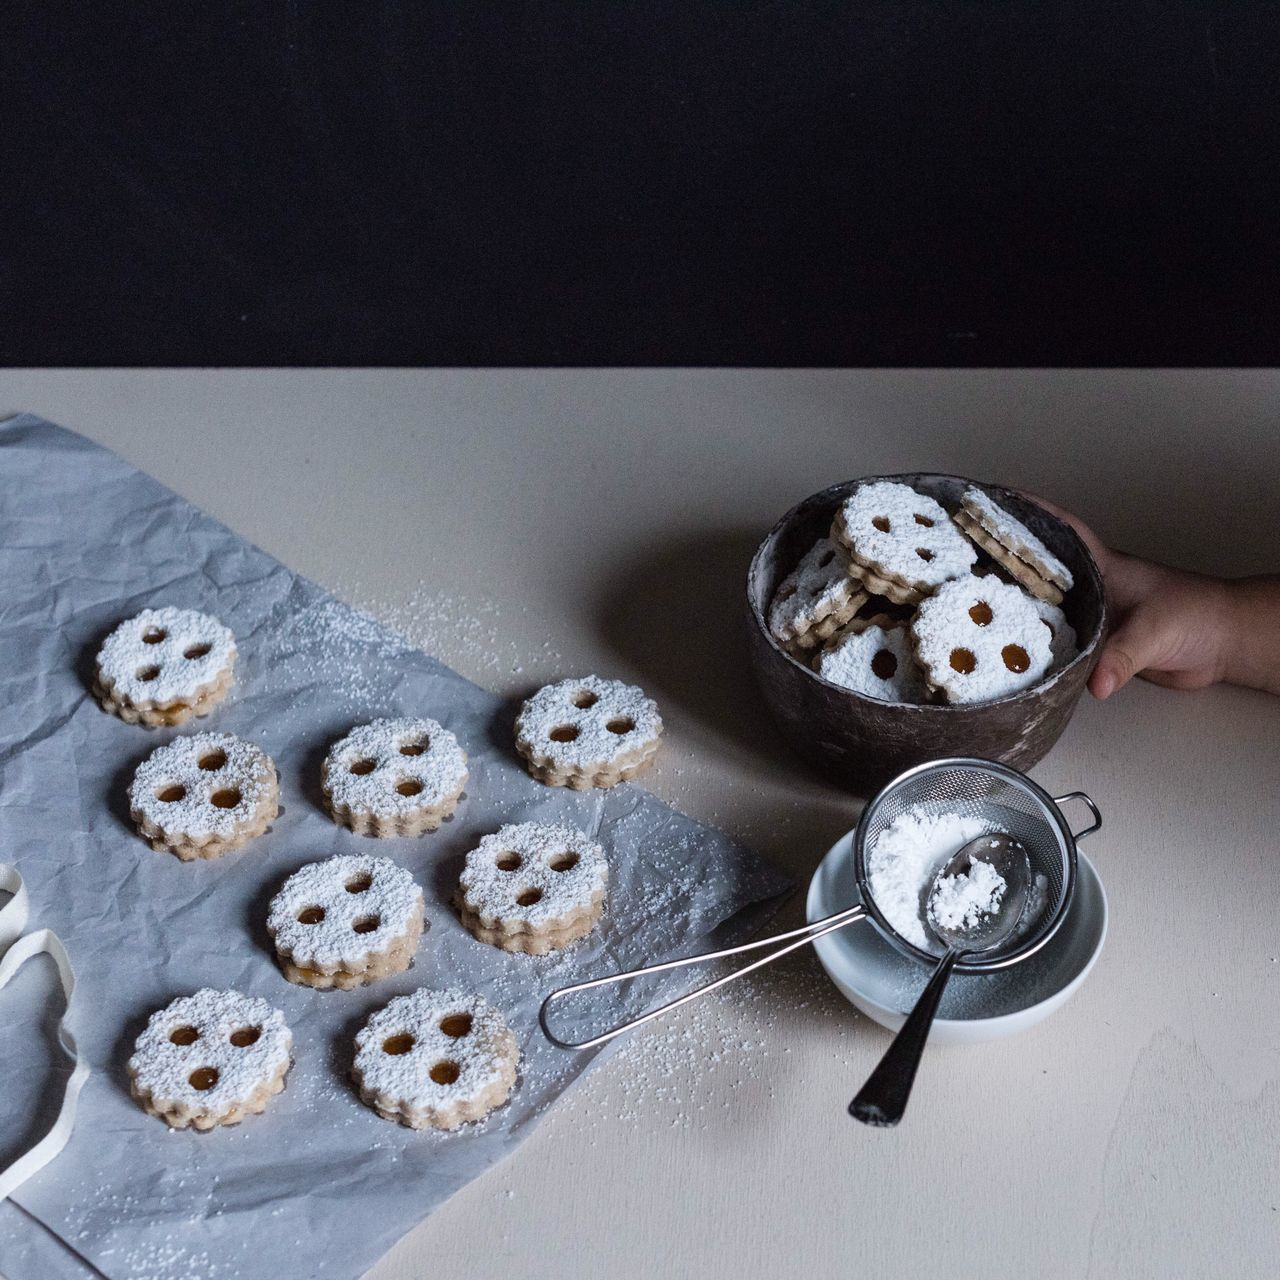 Baking Food And Drink Sweet Food Food Human Hand Ready-to-eat Low Key Foodstyling Foodphotography Still Life Food Photography Lifestyle Photography Food And Drink Linzer Augen Moments Of Life Cooking Baking Cookies Cookies Fresh On Market 2016